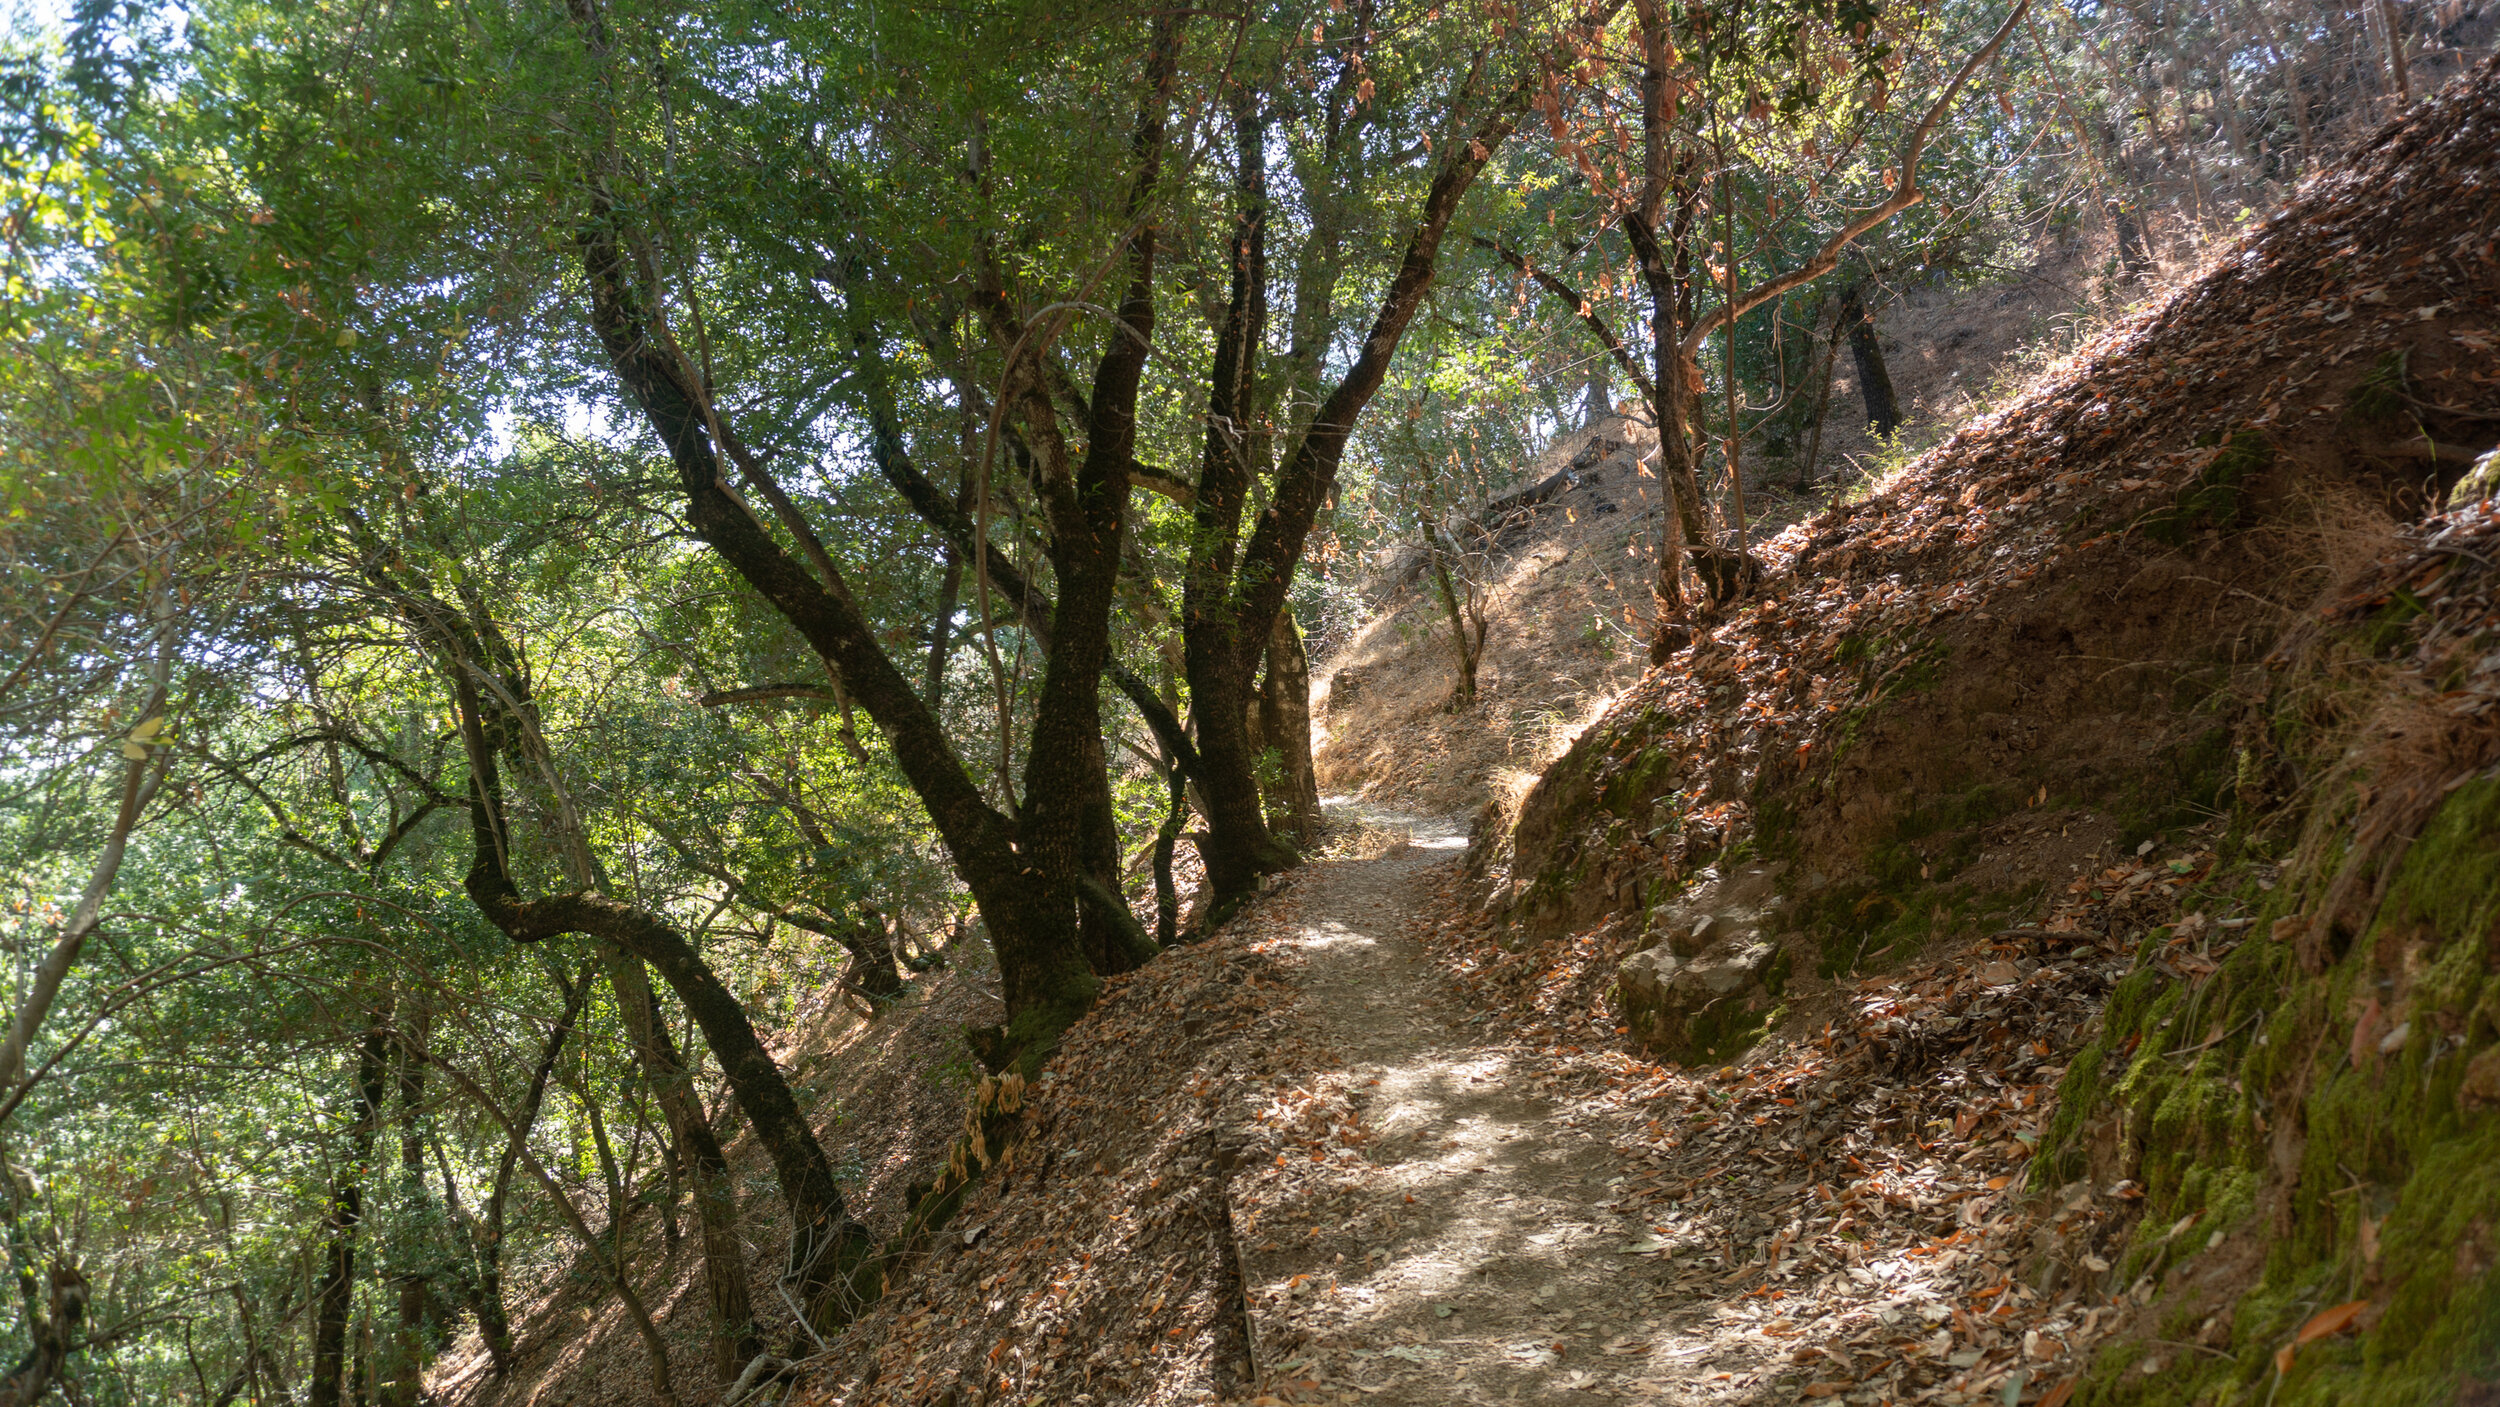 The Corral Trail